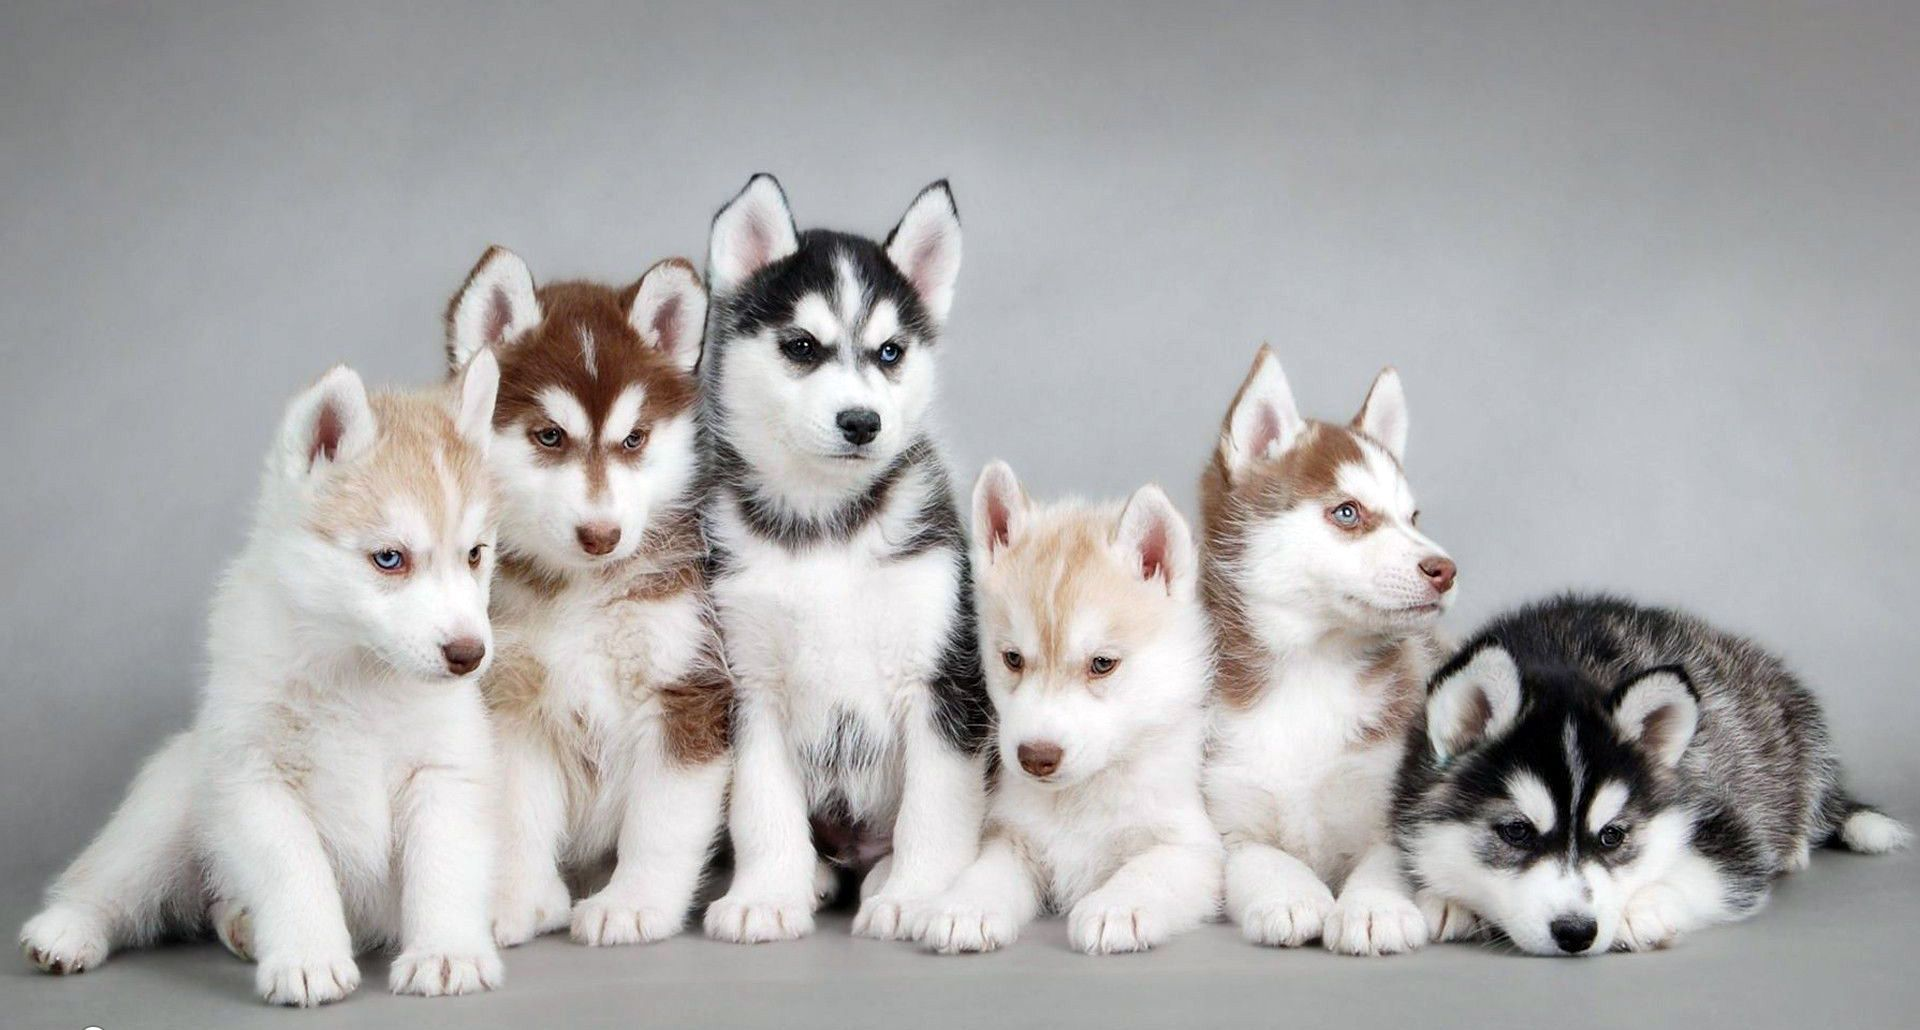 baby-puppies-category-Amazing-baby-puppies-backround-wallpaper-wpc5806